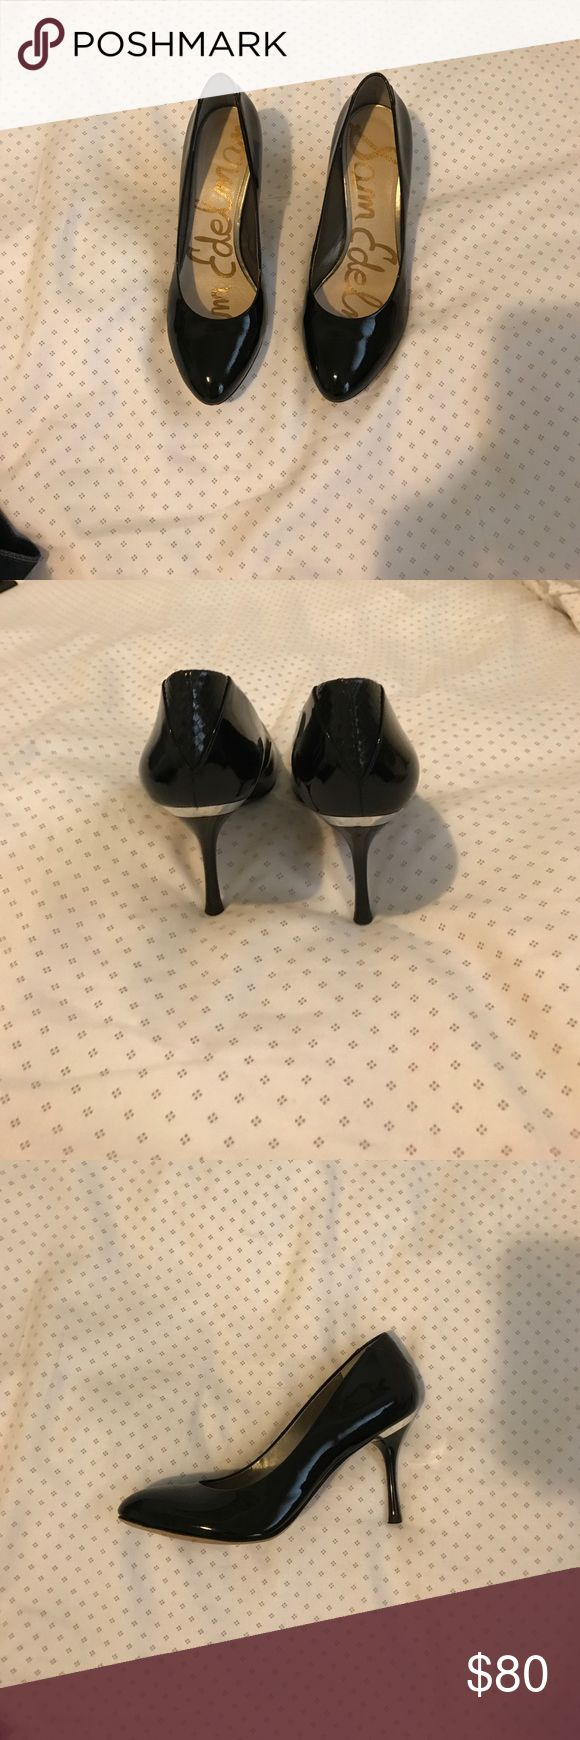 Black Sam Edelman Heels Black, patent leather Sam Edelman heels. Worn only 2x. Sam Edelman Shoes Heels